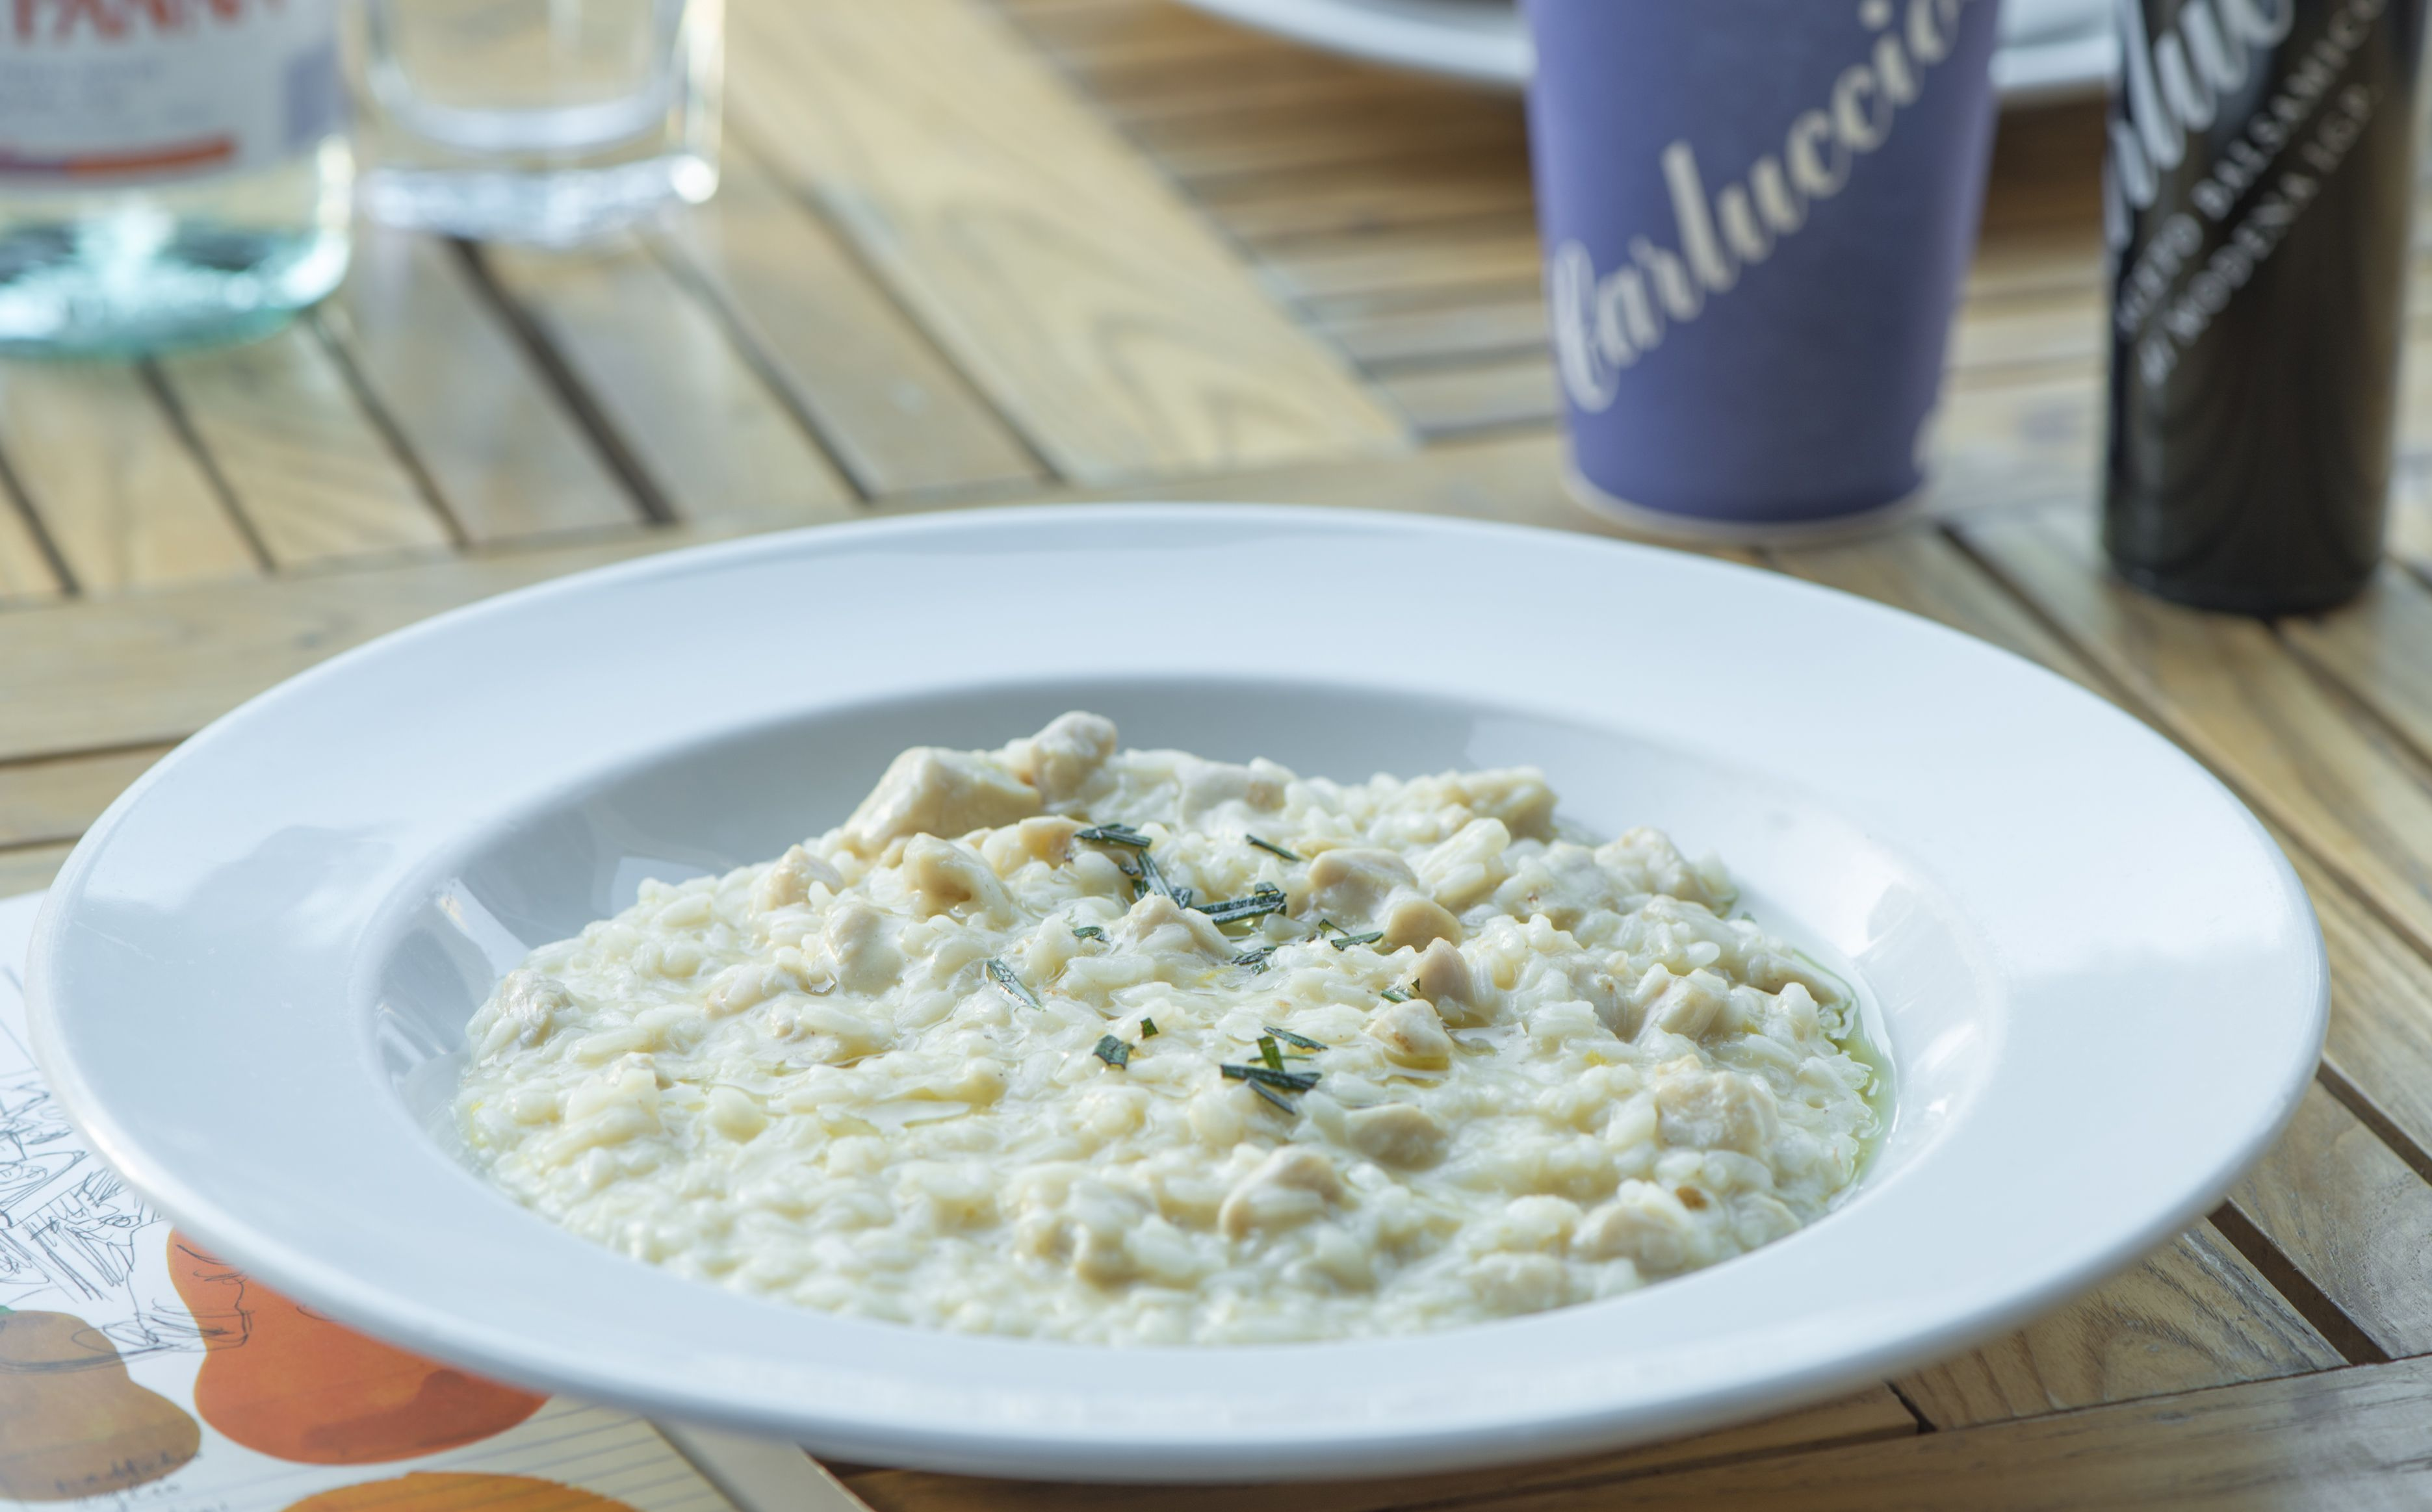 CARLUCCIO'S - Risotto al limone con pollo - Chicken and lemon risotto  Want a taste? Sample incredible food from the best chefs in the world at Taste of Dubai. Follow us on Facebook for more details www.facebook.com/...